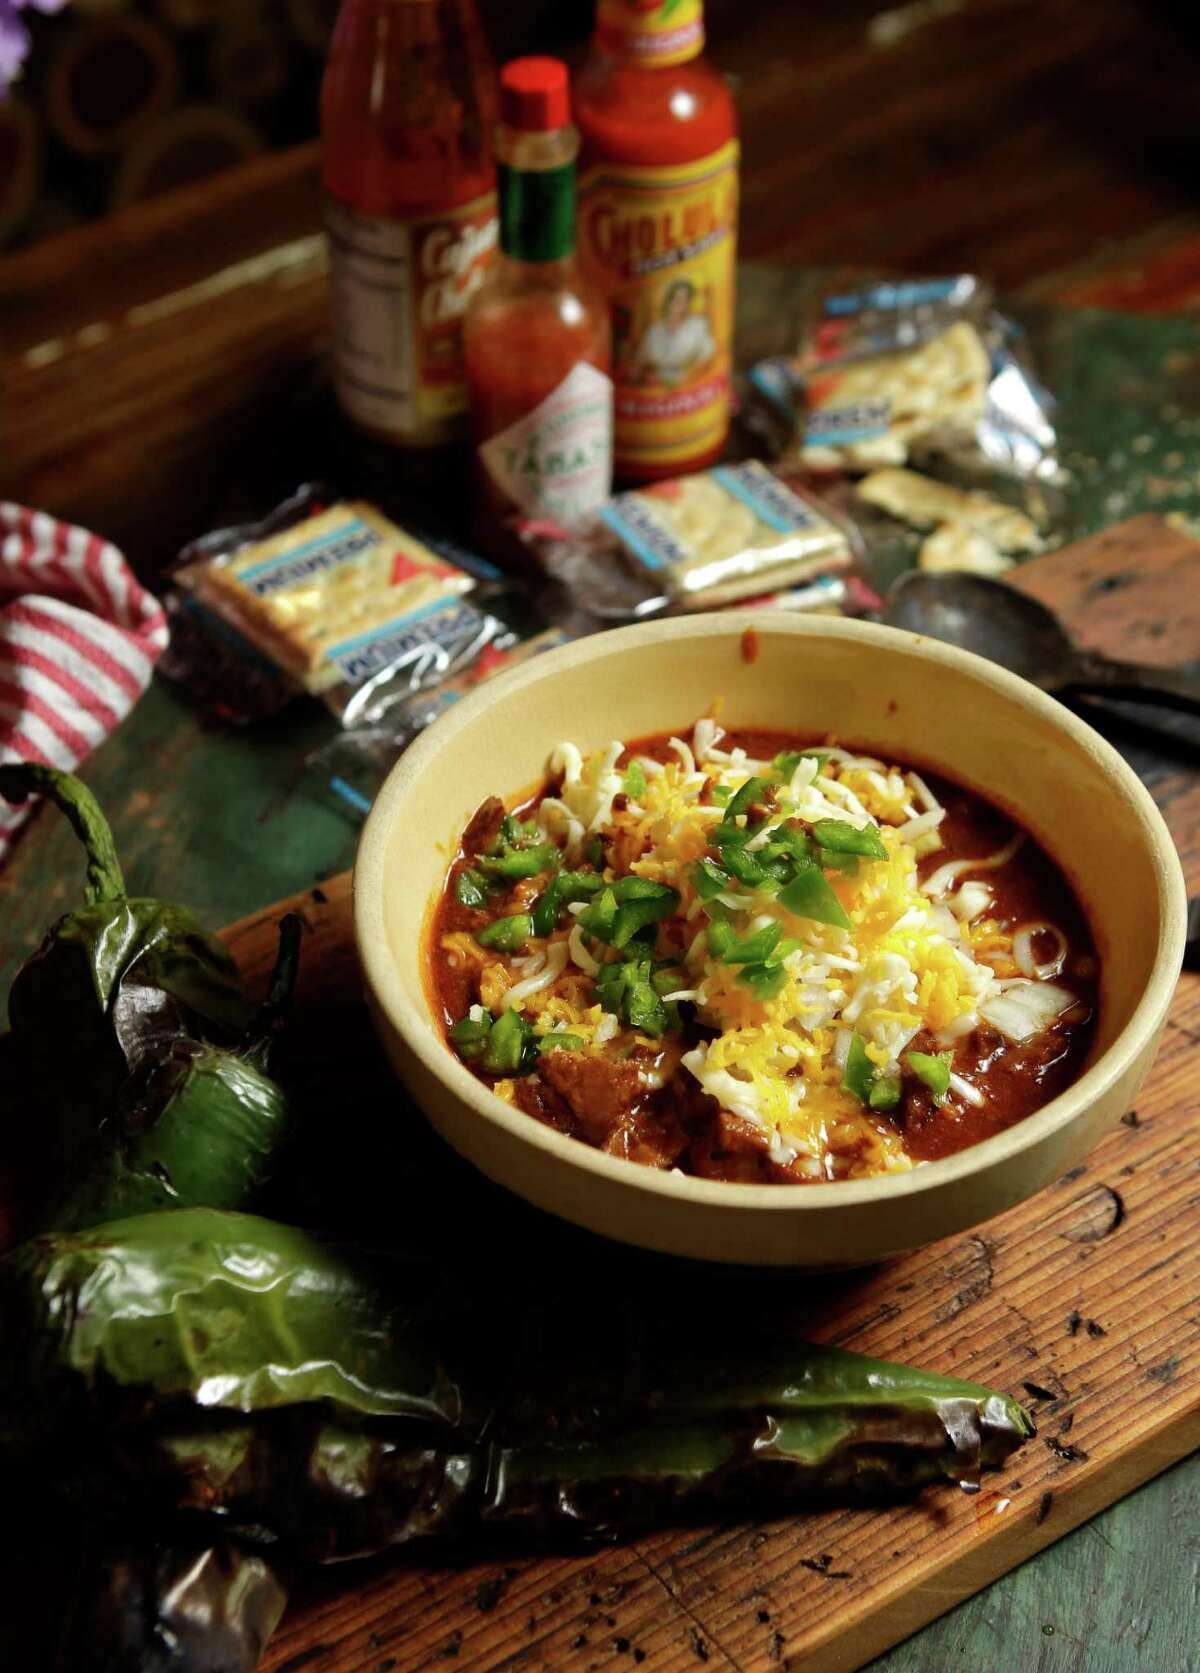 Hill Country Venison Chili Order it at:Goode's Armadillo Palace, 5015 Kirby What:Hand-cut, Texas-sourced venison topped with cheese, onion, jalapeños and Fritos. It's one of the signature dishes at this Houston stalwart.